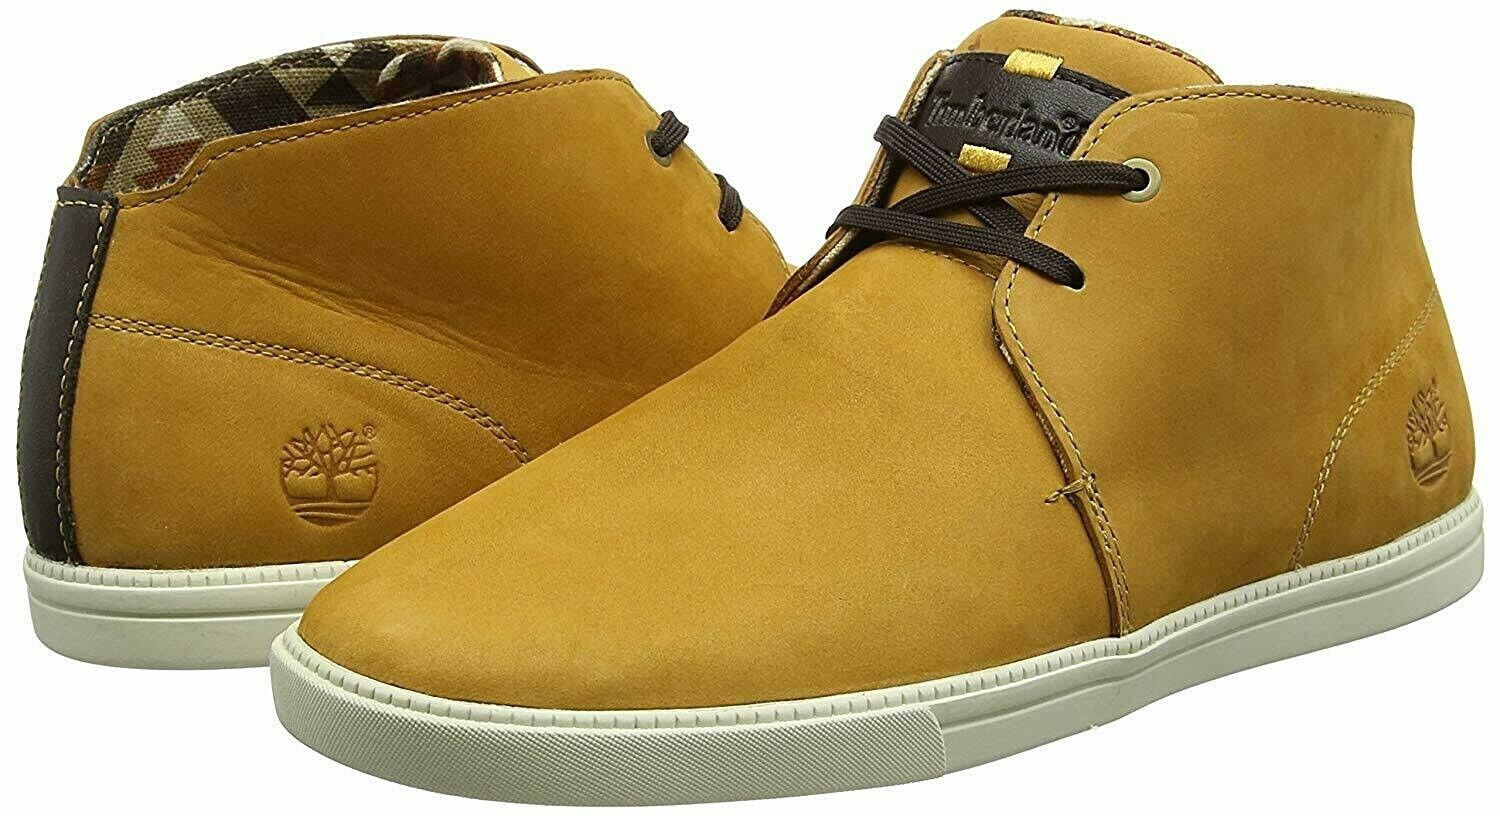 Mens Timberland Mid Fulk casual Trainers Shoes Trainers Wheat Leather Size UK